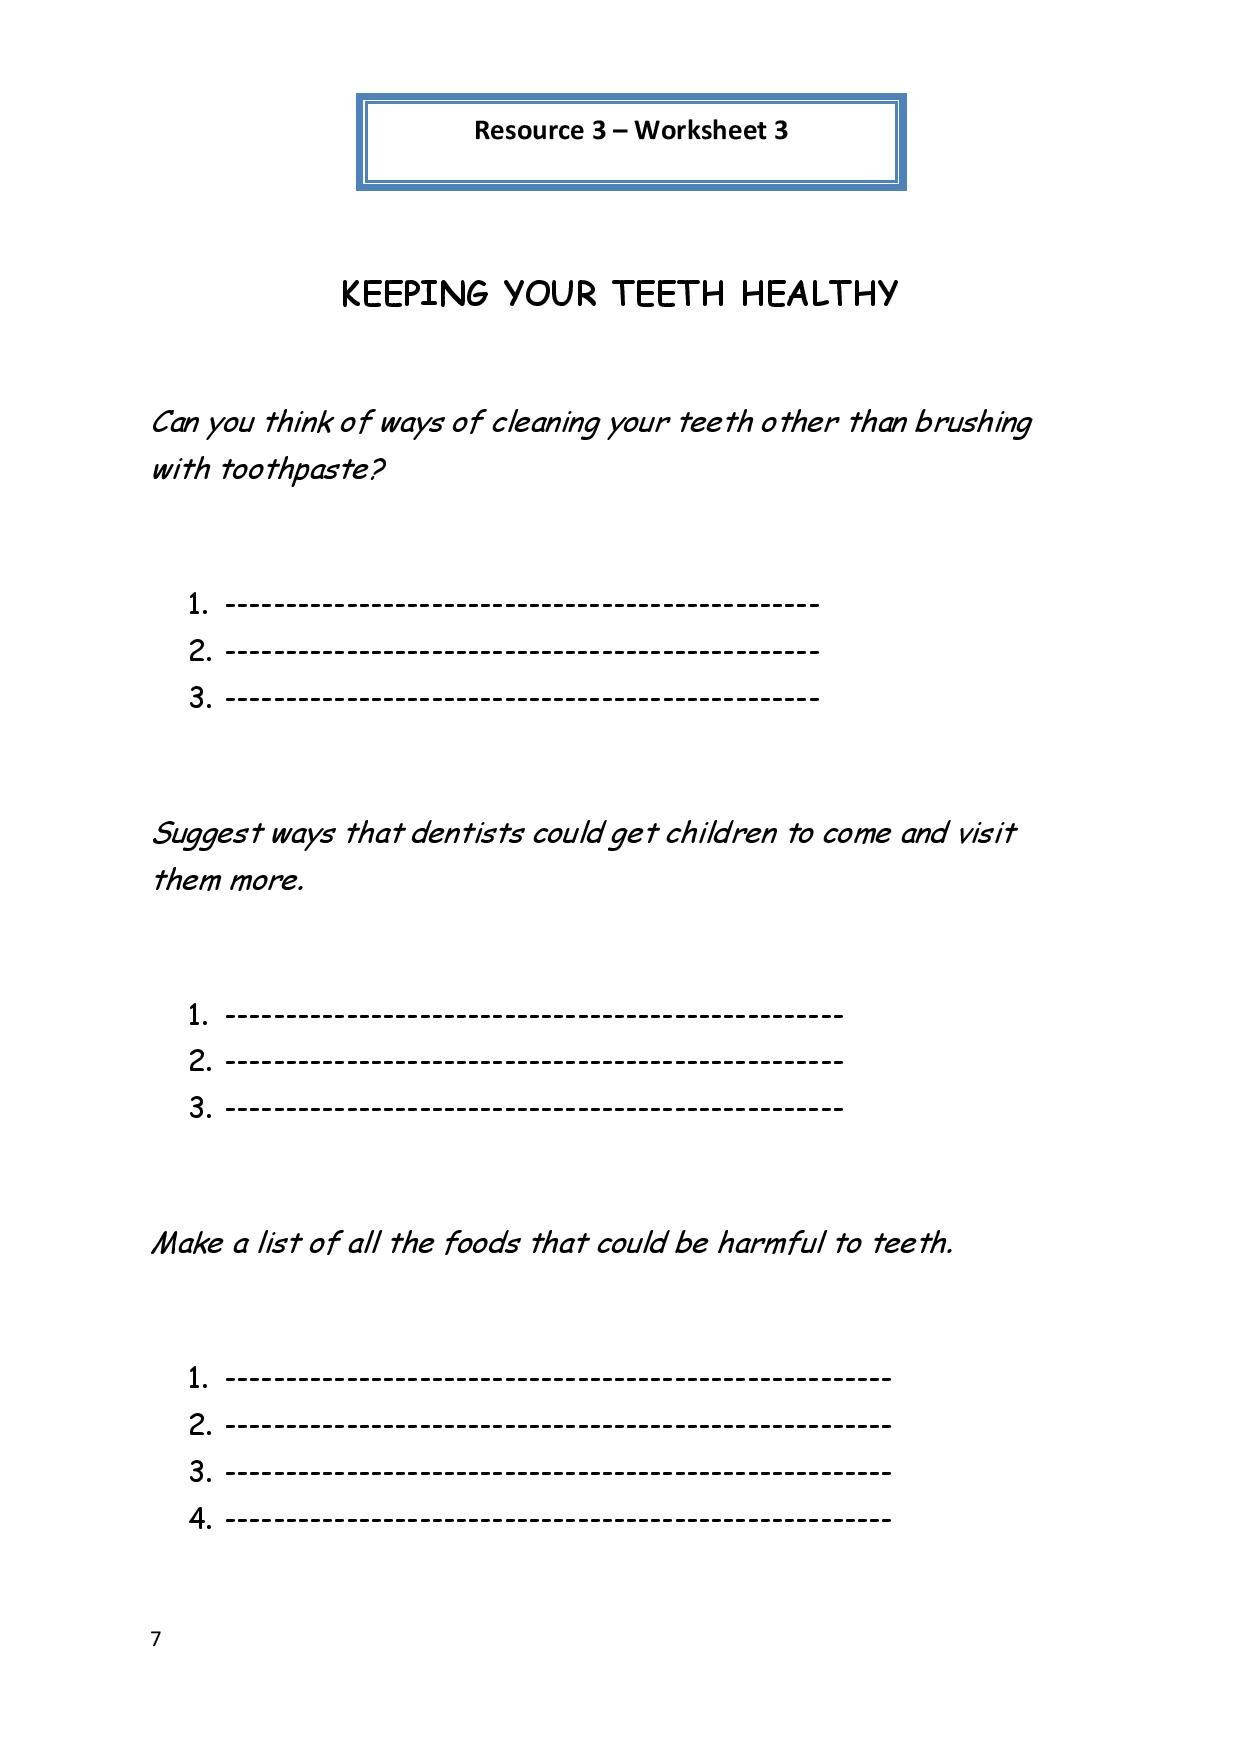 Middle School Health Worksheets Personal Hygiene Worksheet 3 Keeping Your Teeth Healthy